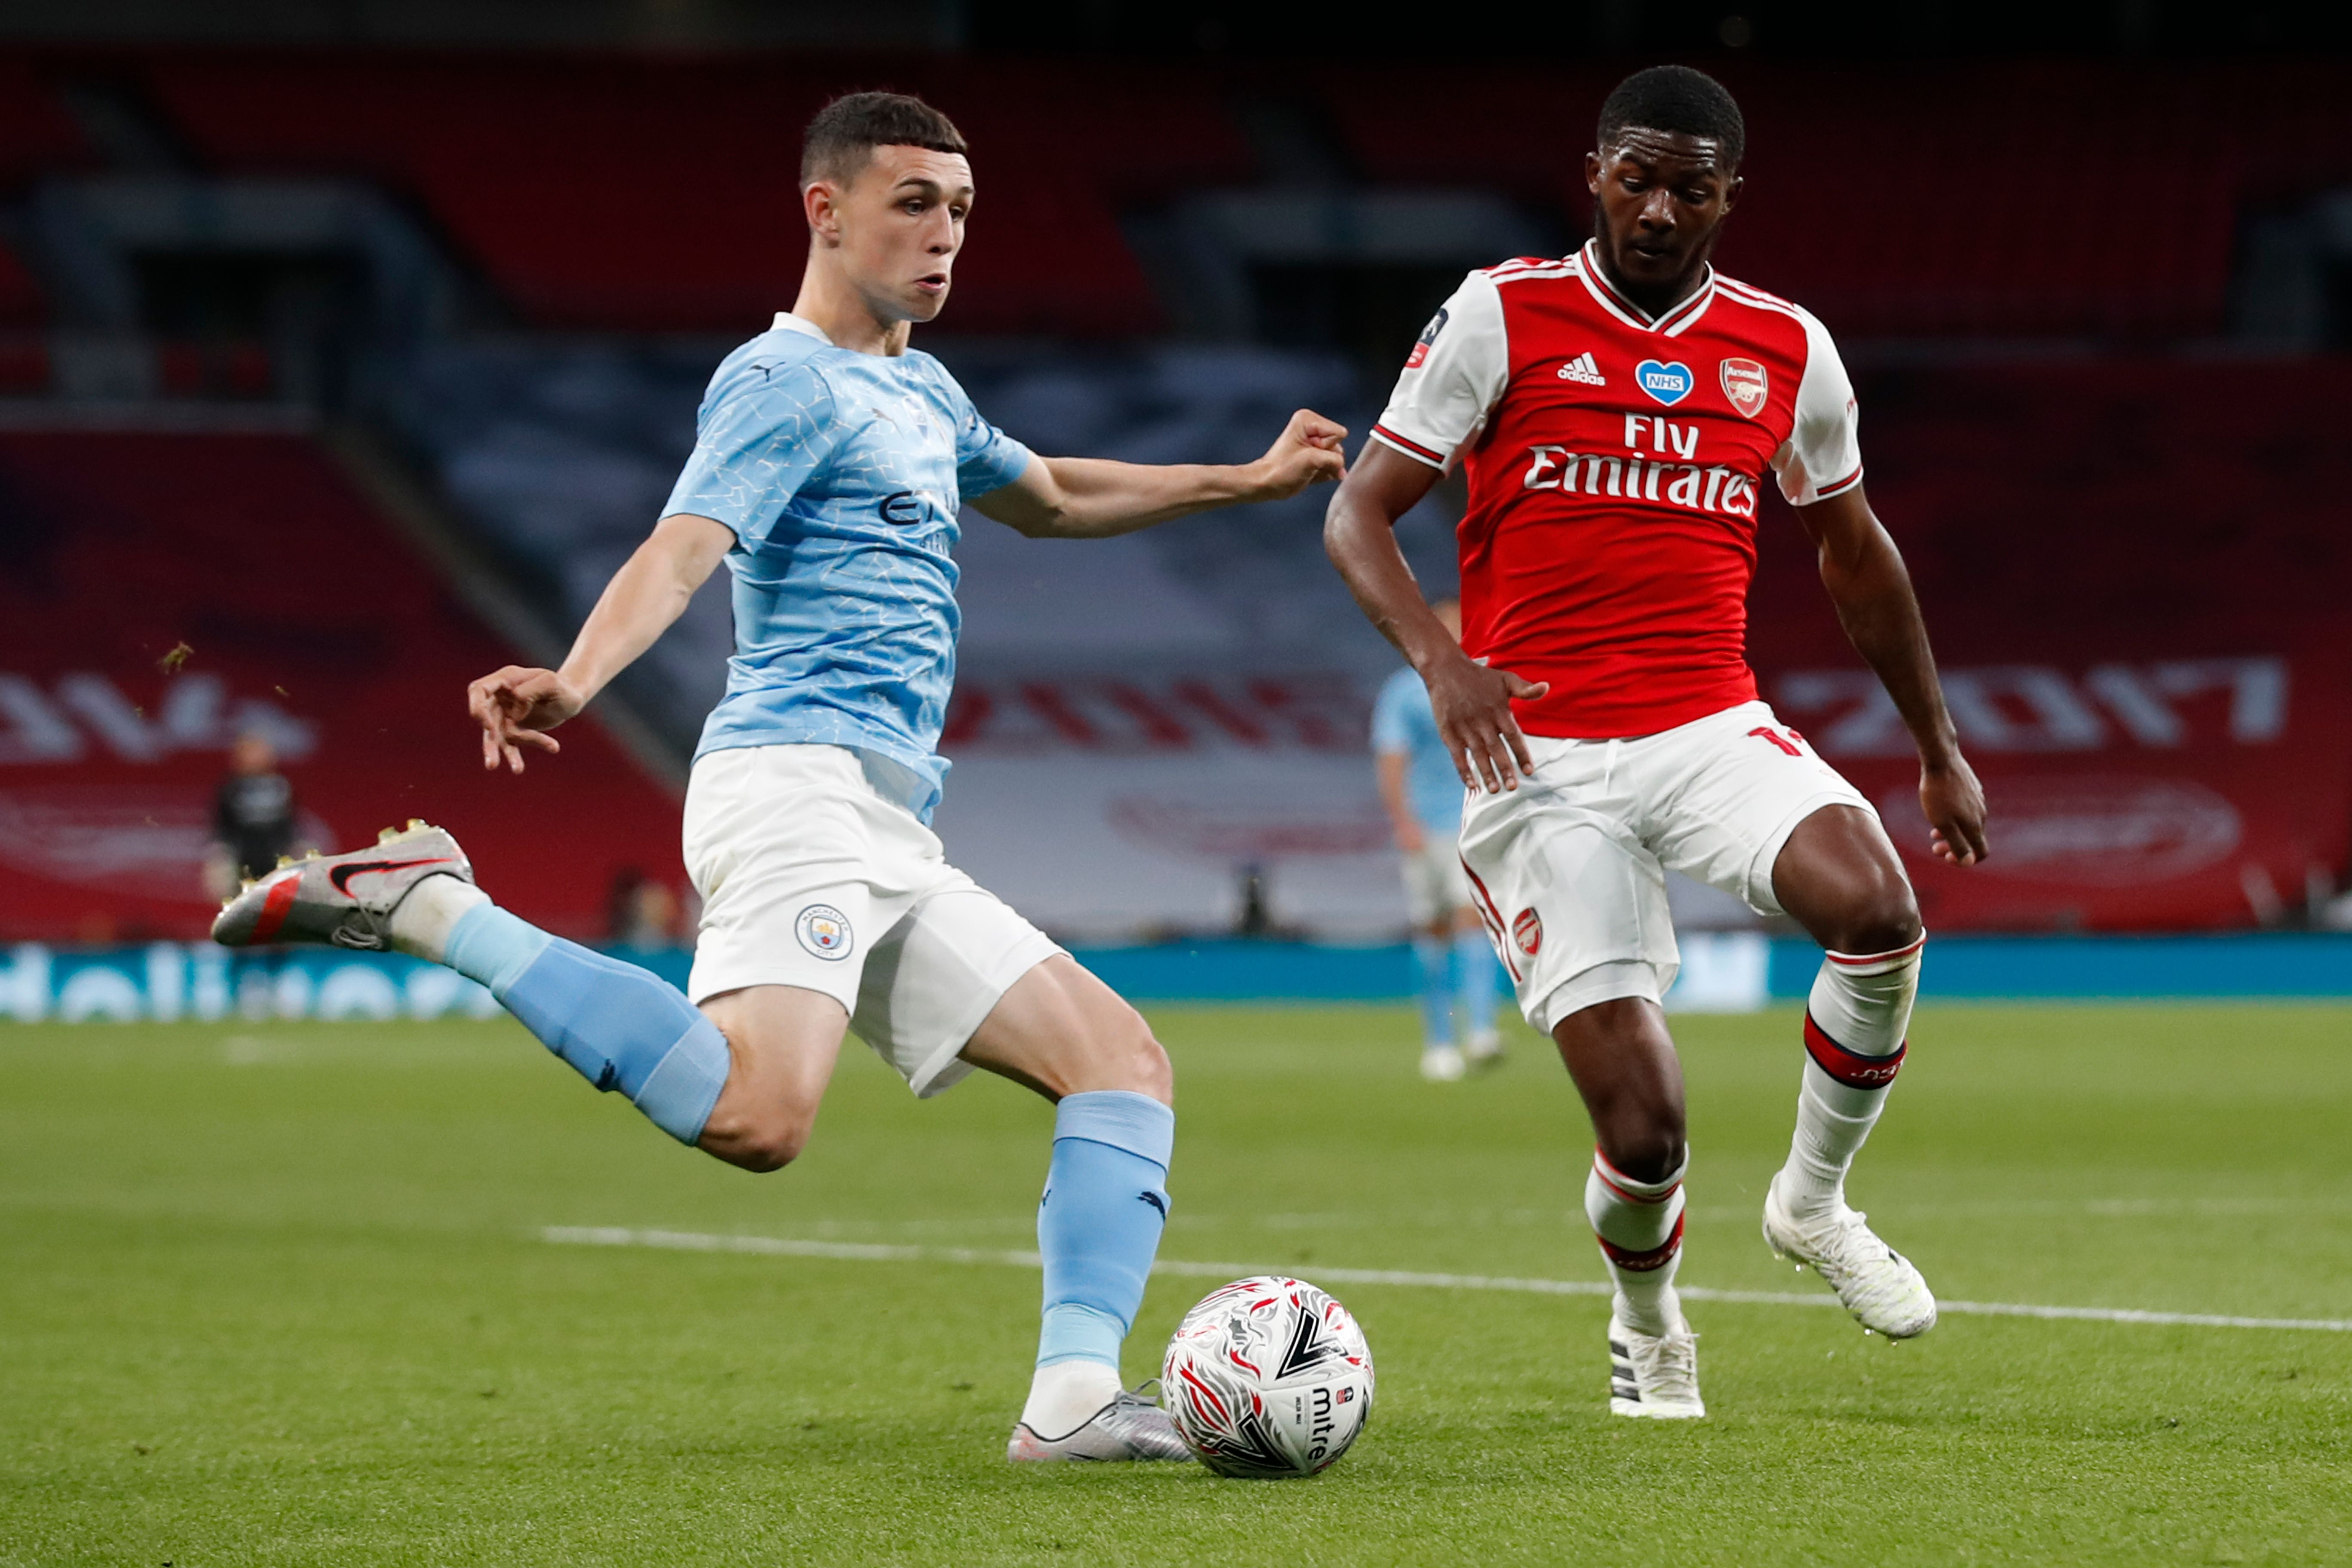 4-3-3 Manchester City Predicted Lineup Vs Bournemouth (Man City's Phil Foden is in action in the photo)